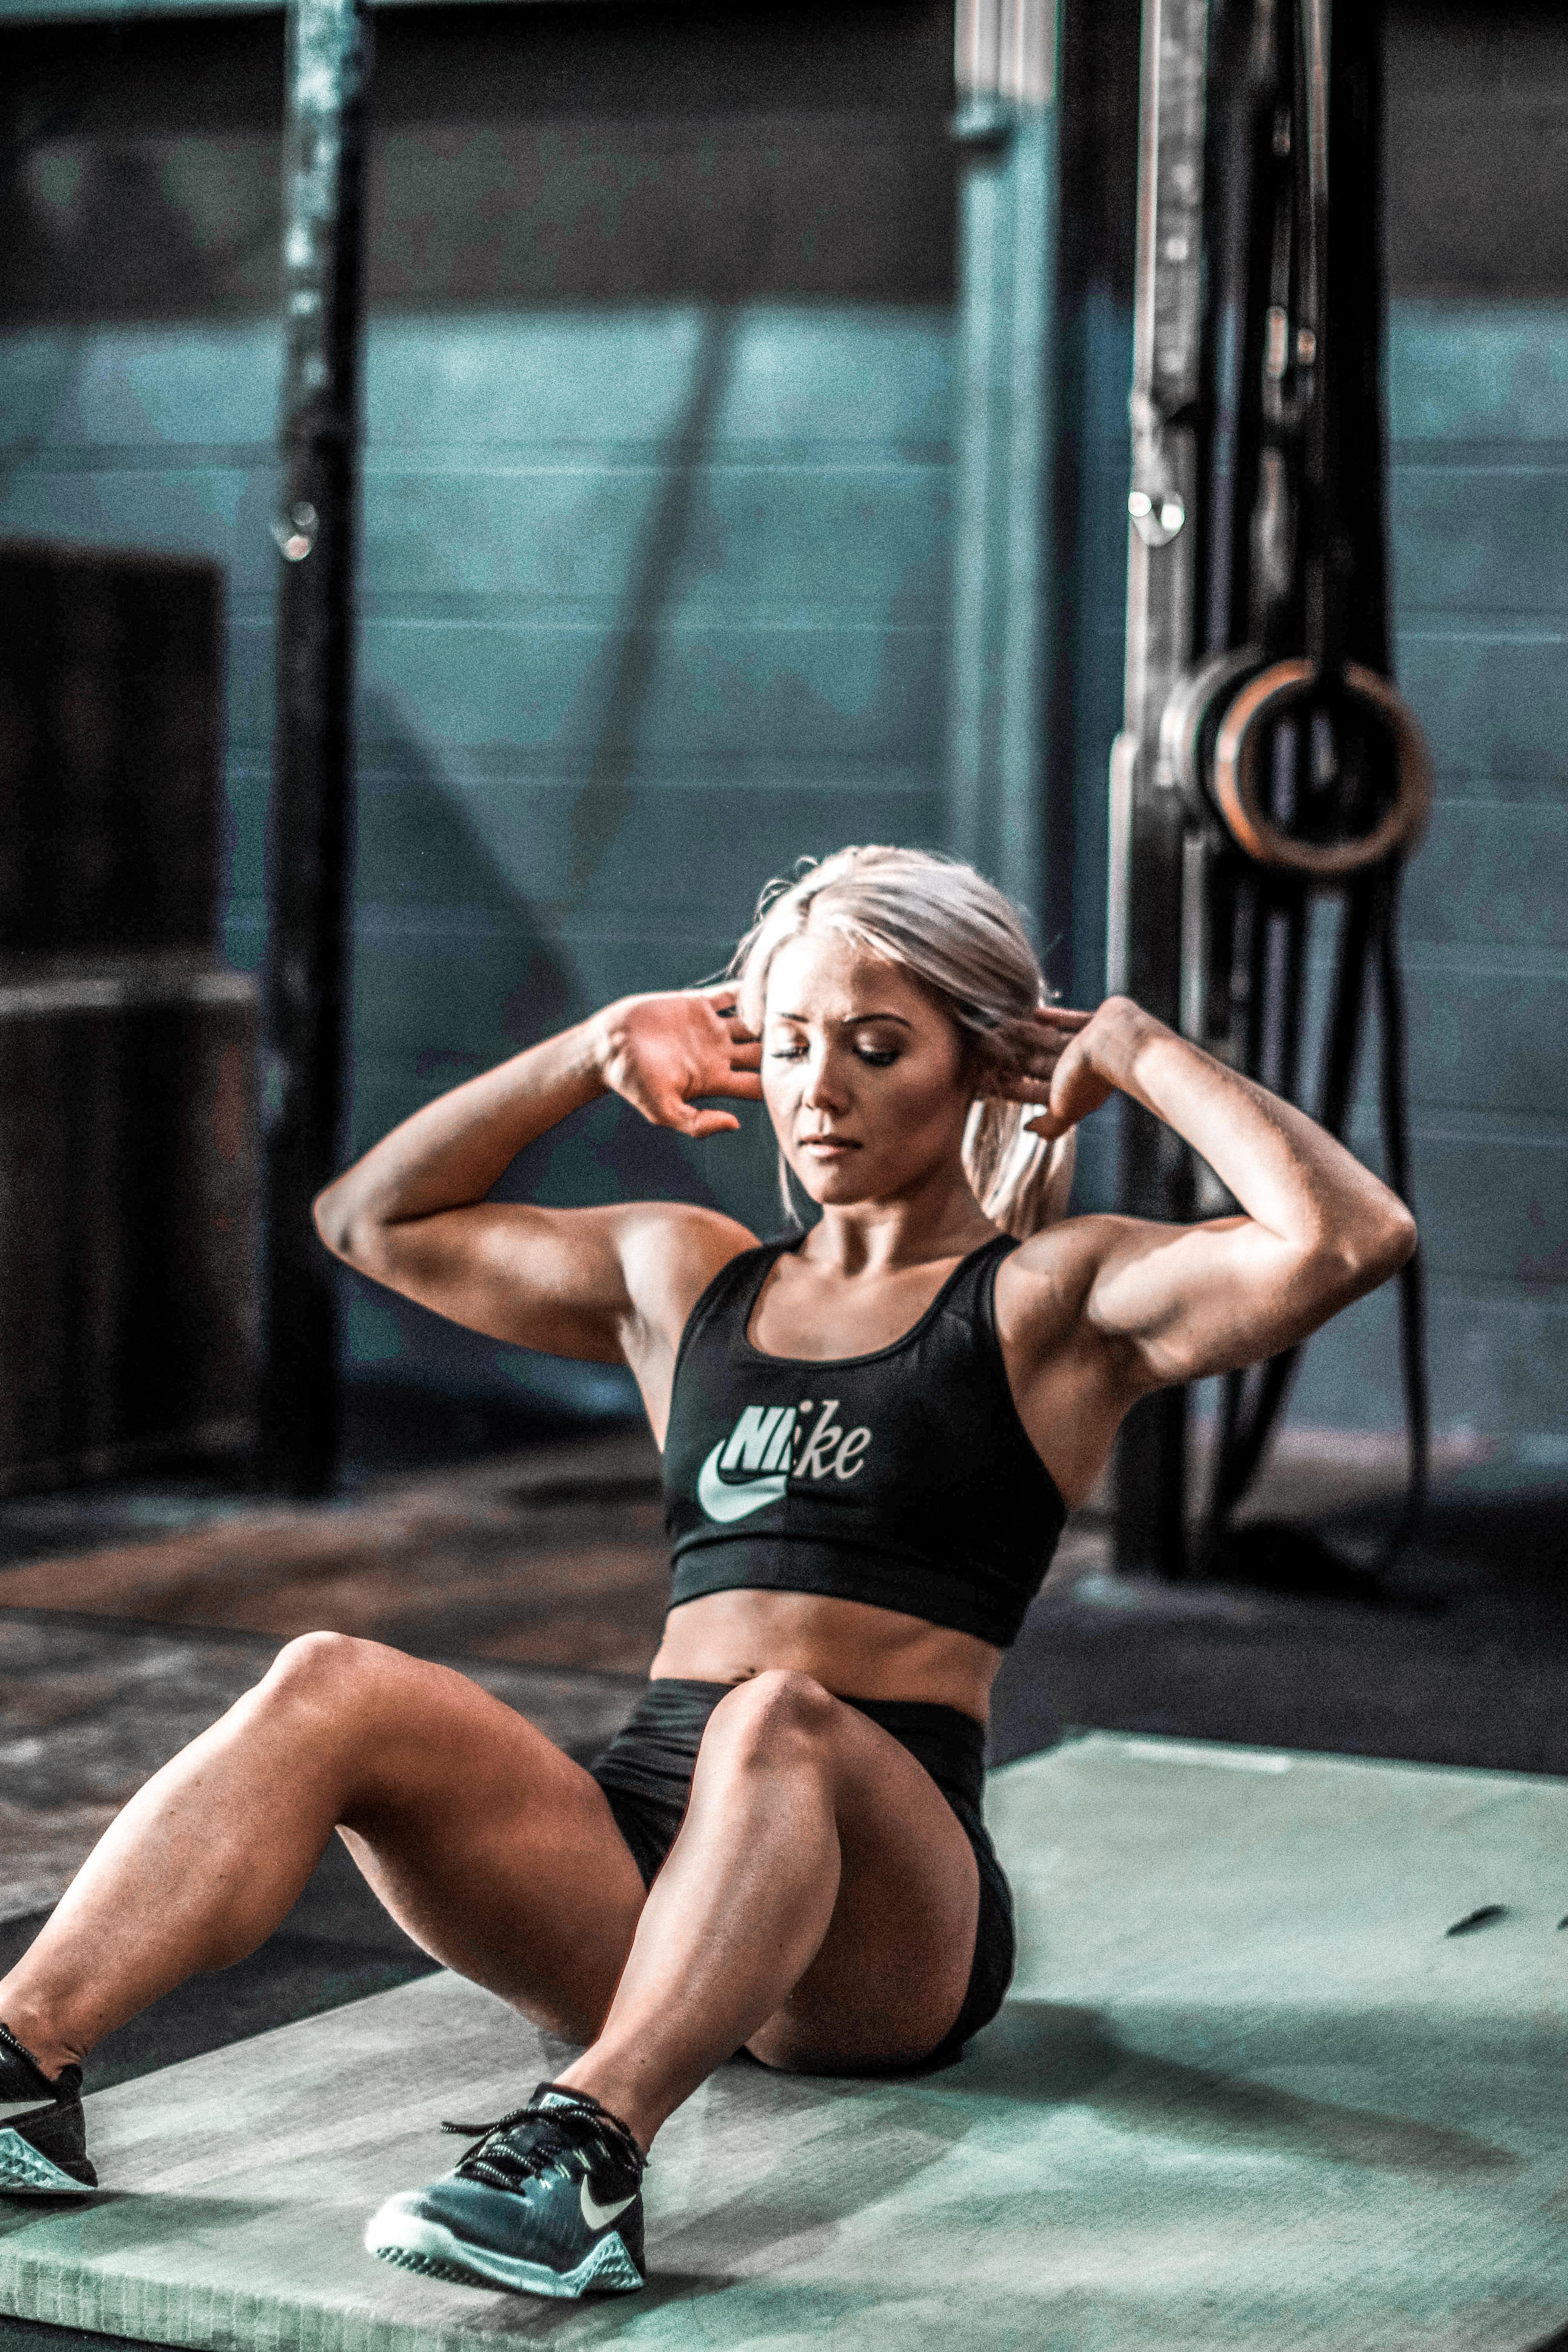 Picture with tags: Training, Interesting, Sport, Fitness, Recommendations, Health